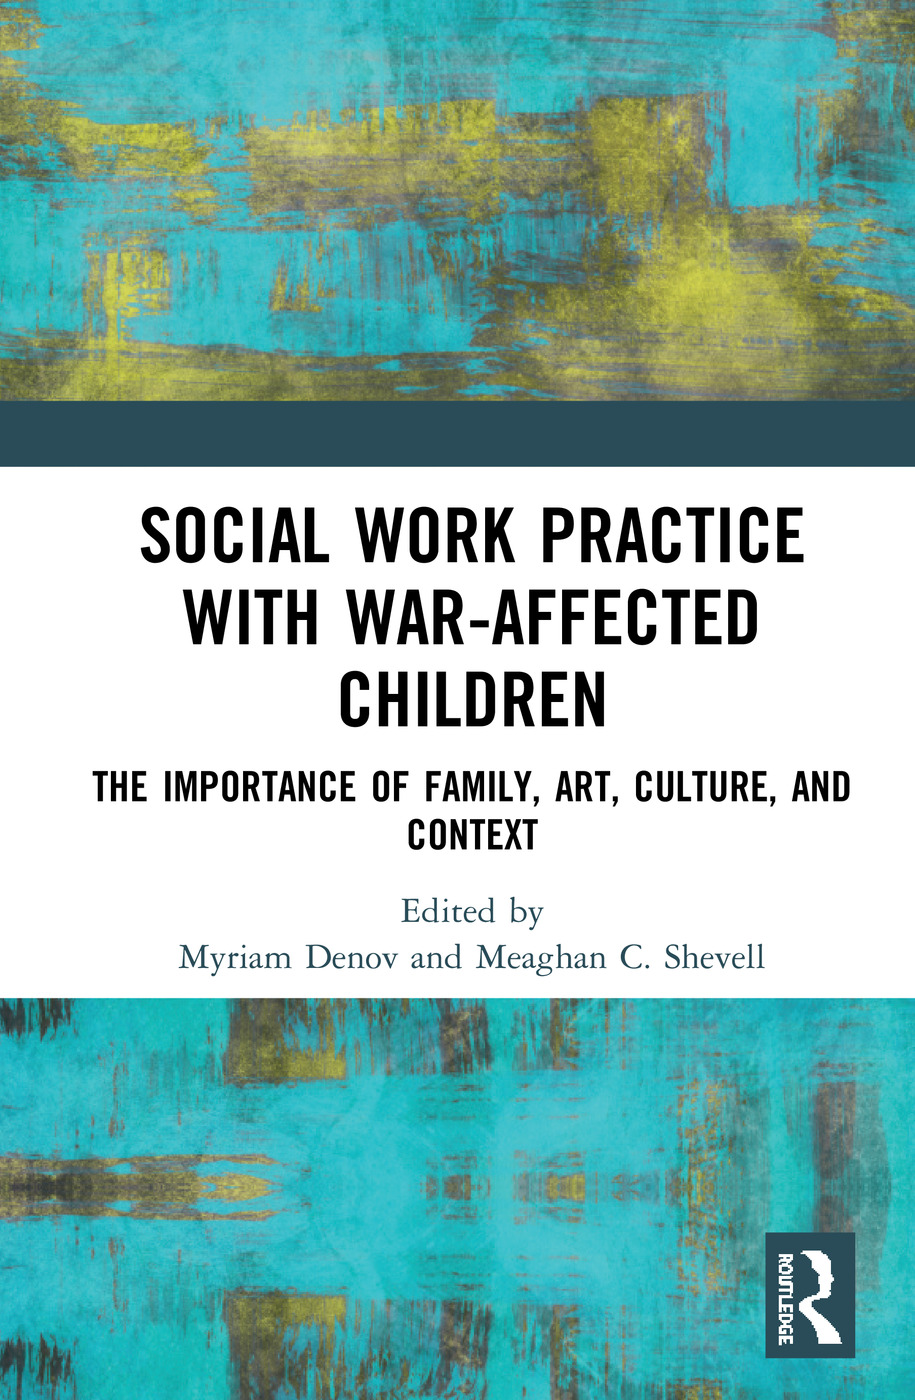 Social Work Practice with War-Affected Children: The Importance of Family, Art, Culture, and Context book cover